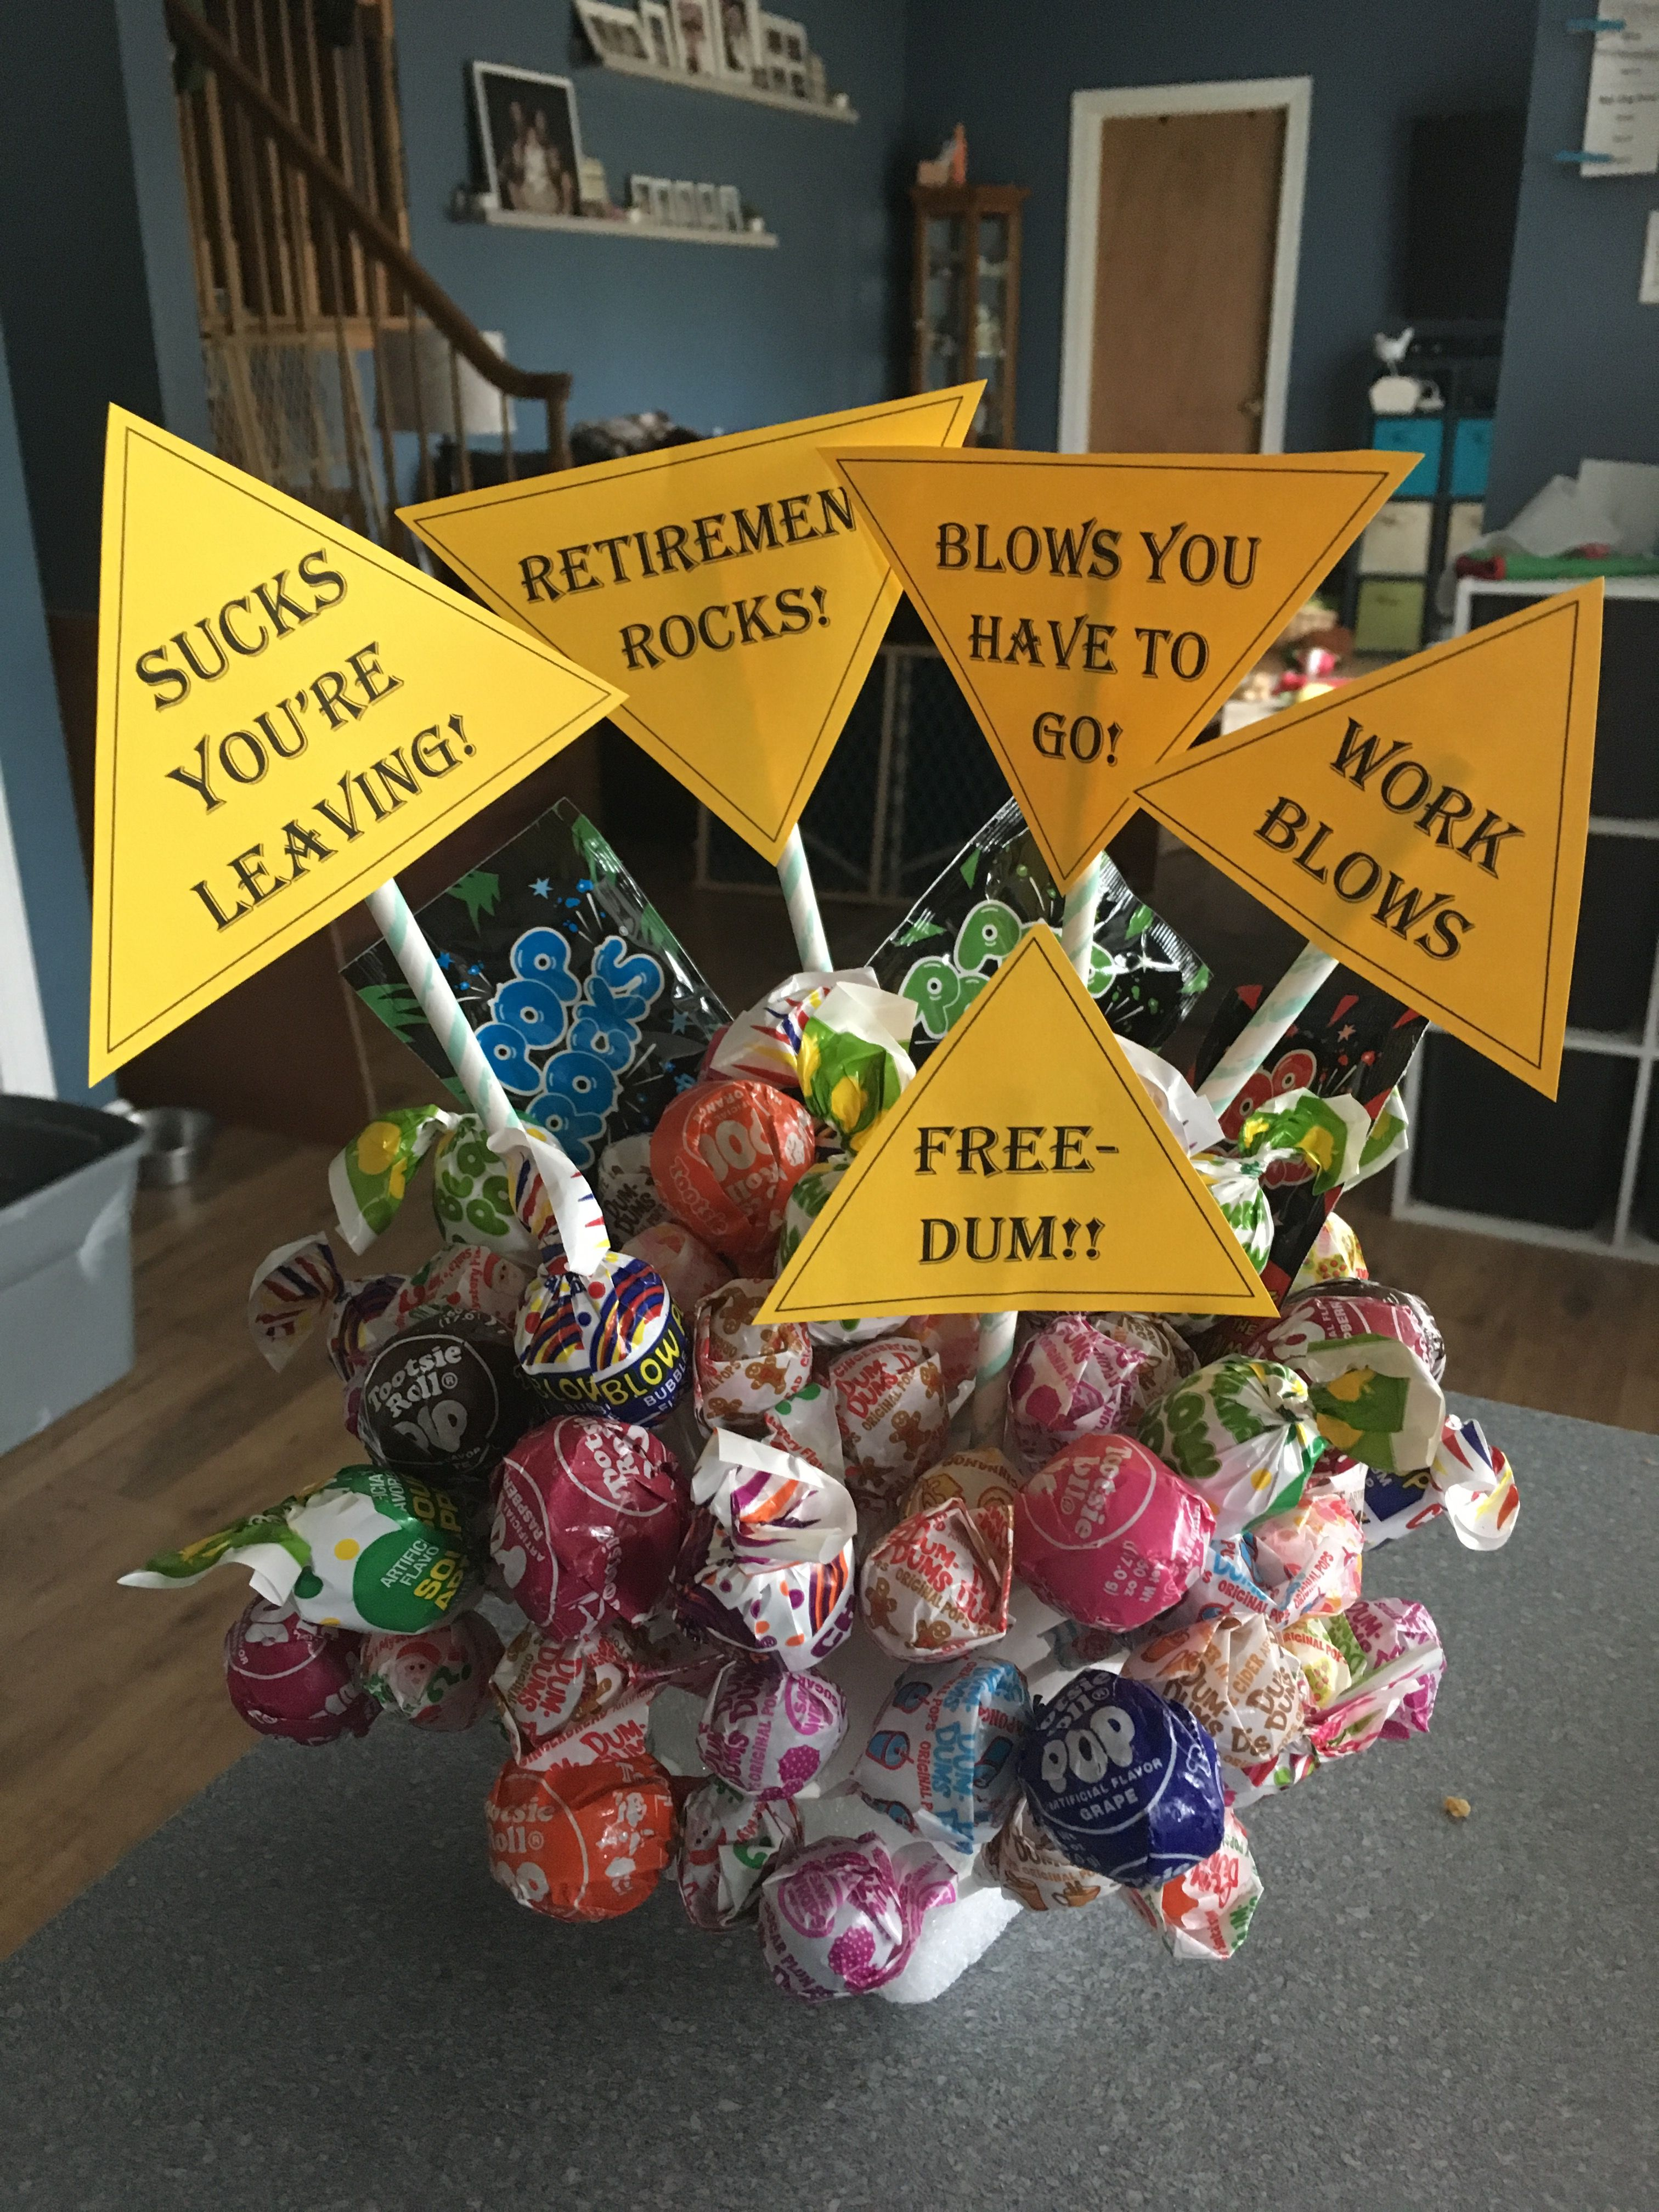 Pin by Cheryl Anne on Silly retirement gifts Retirement